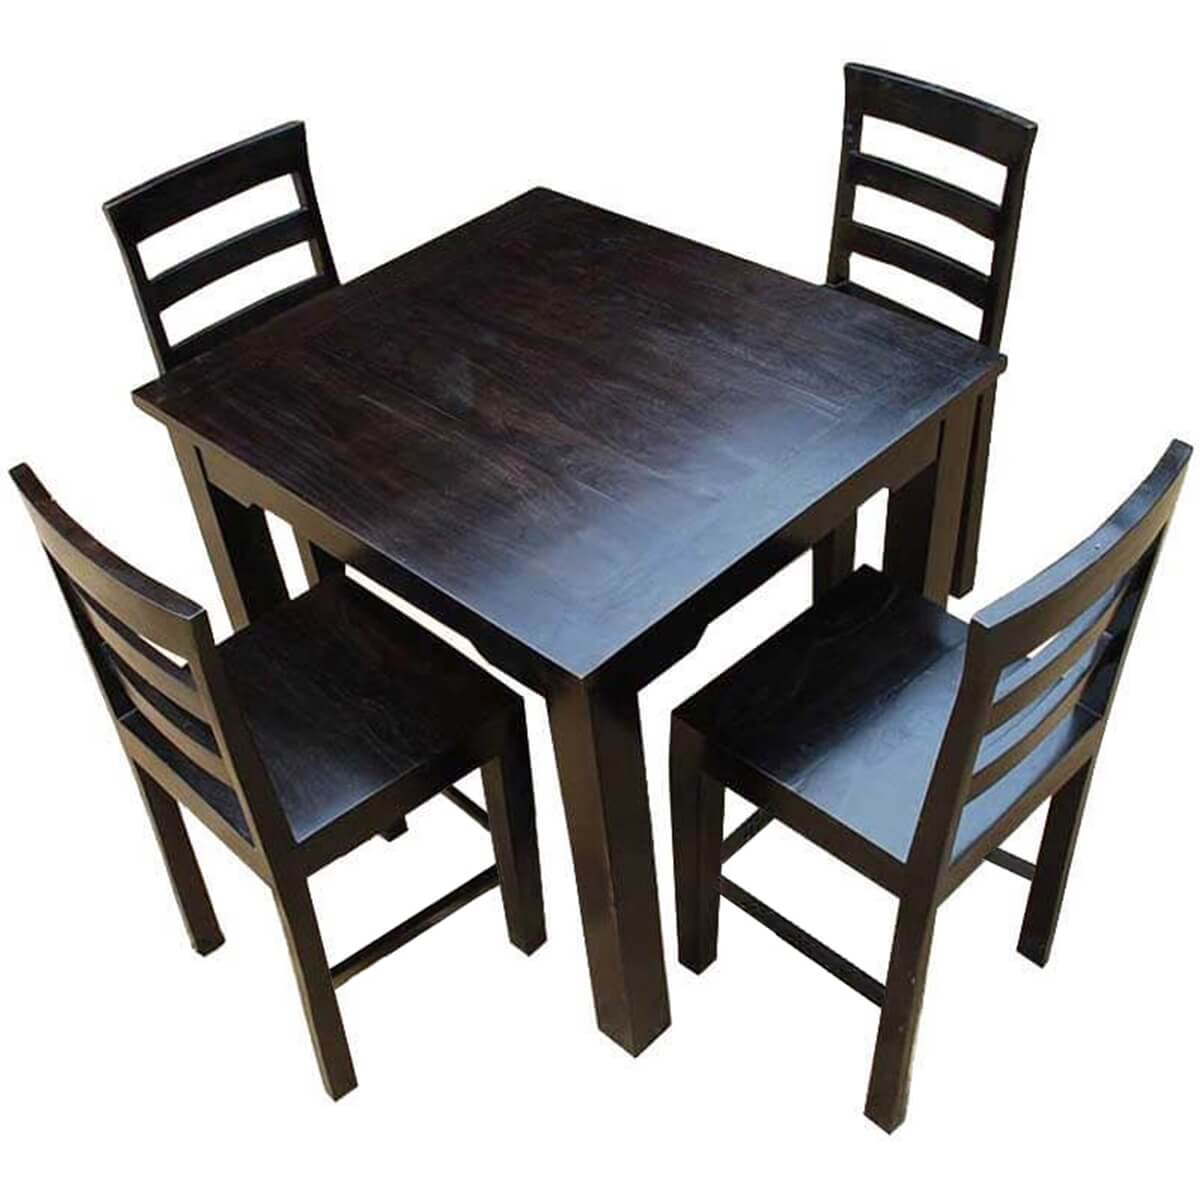 solid wood counter height dining table chairs set for 4 people